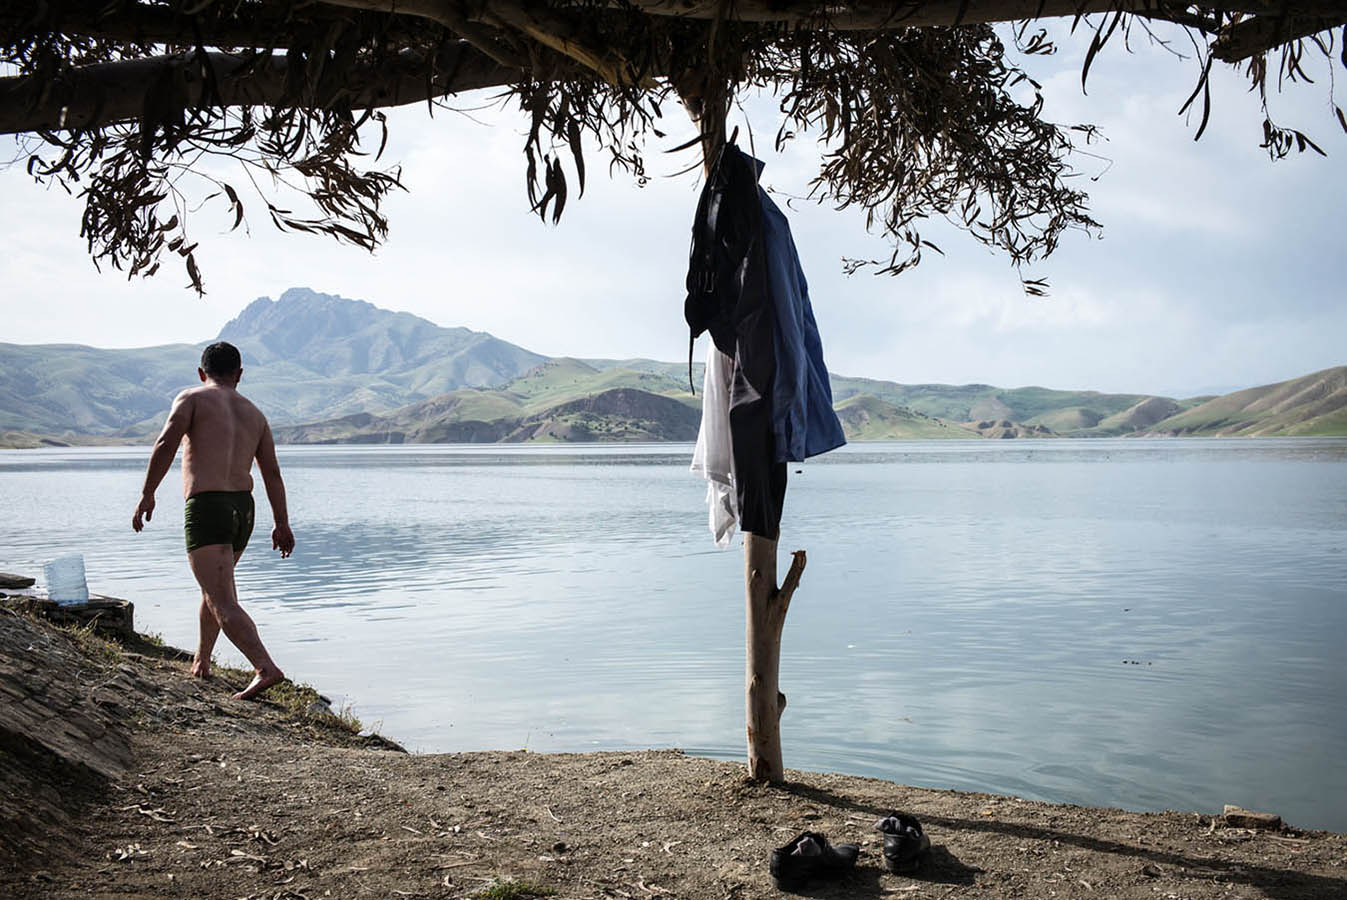 A man gets ready to swim at the Dukan Lake in Suleymaniyah.